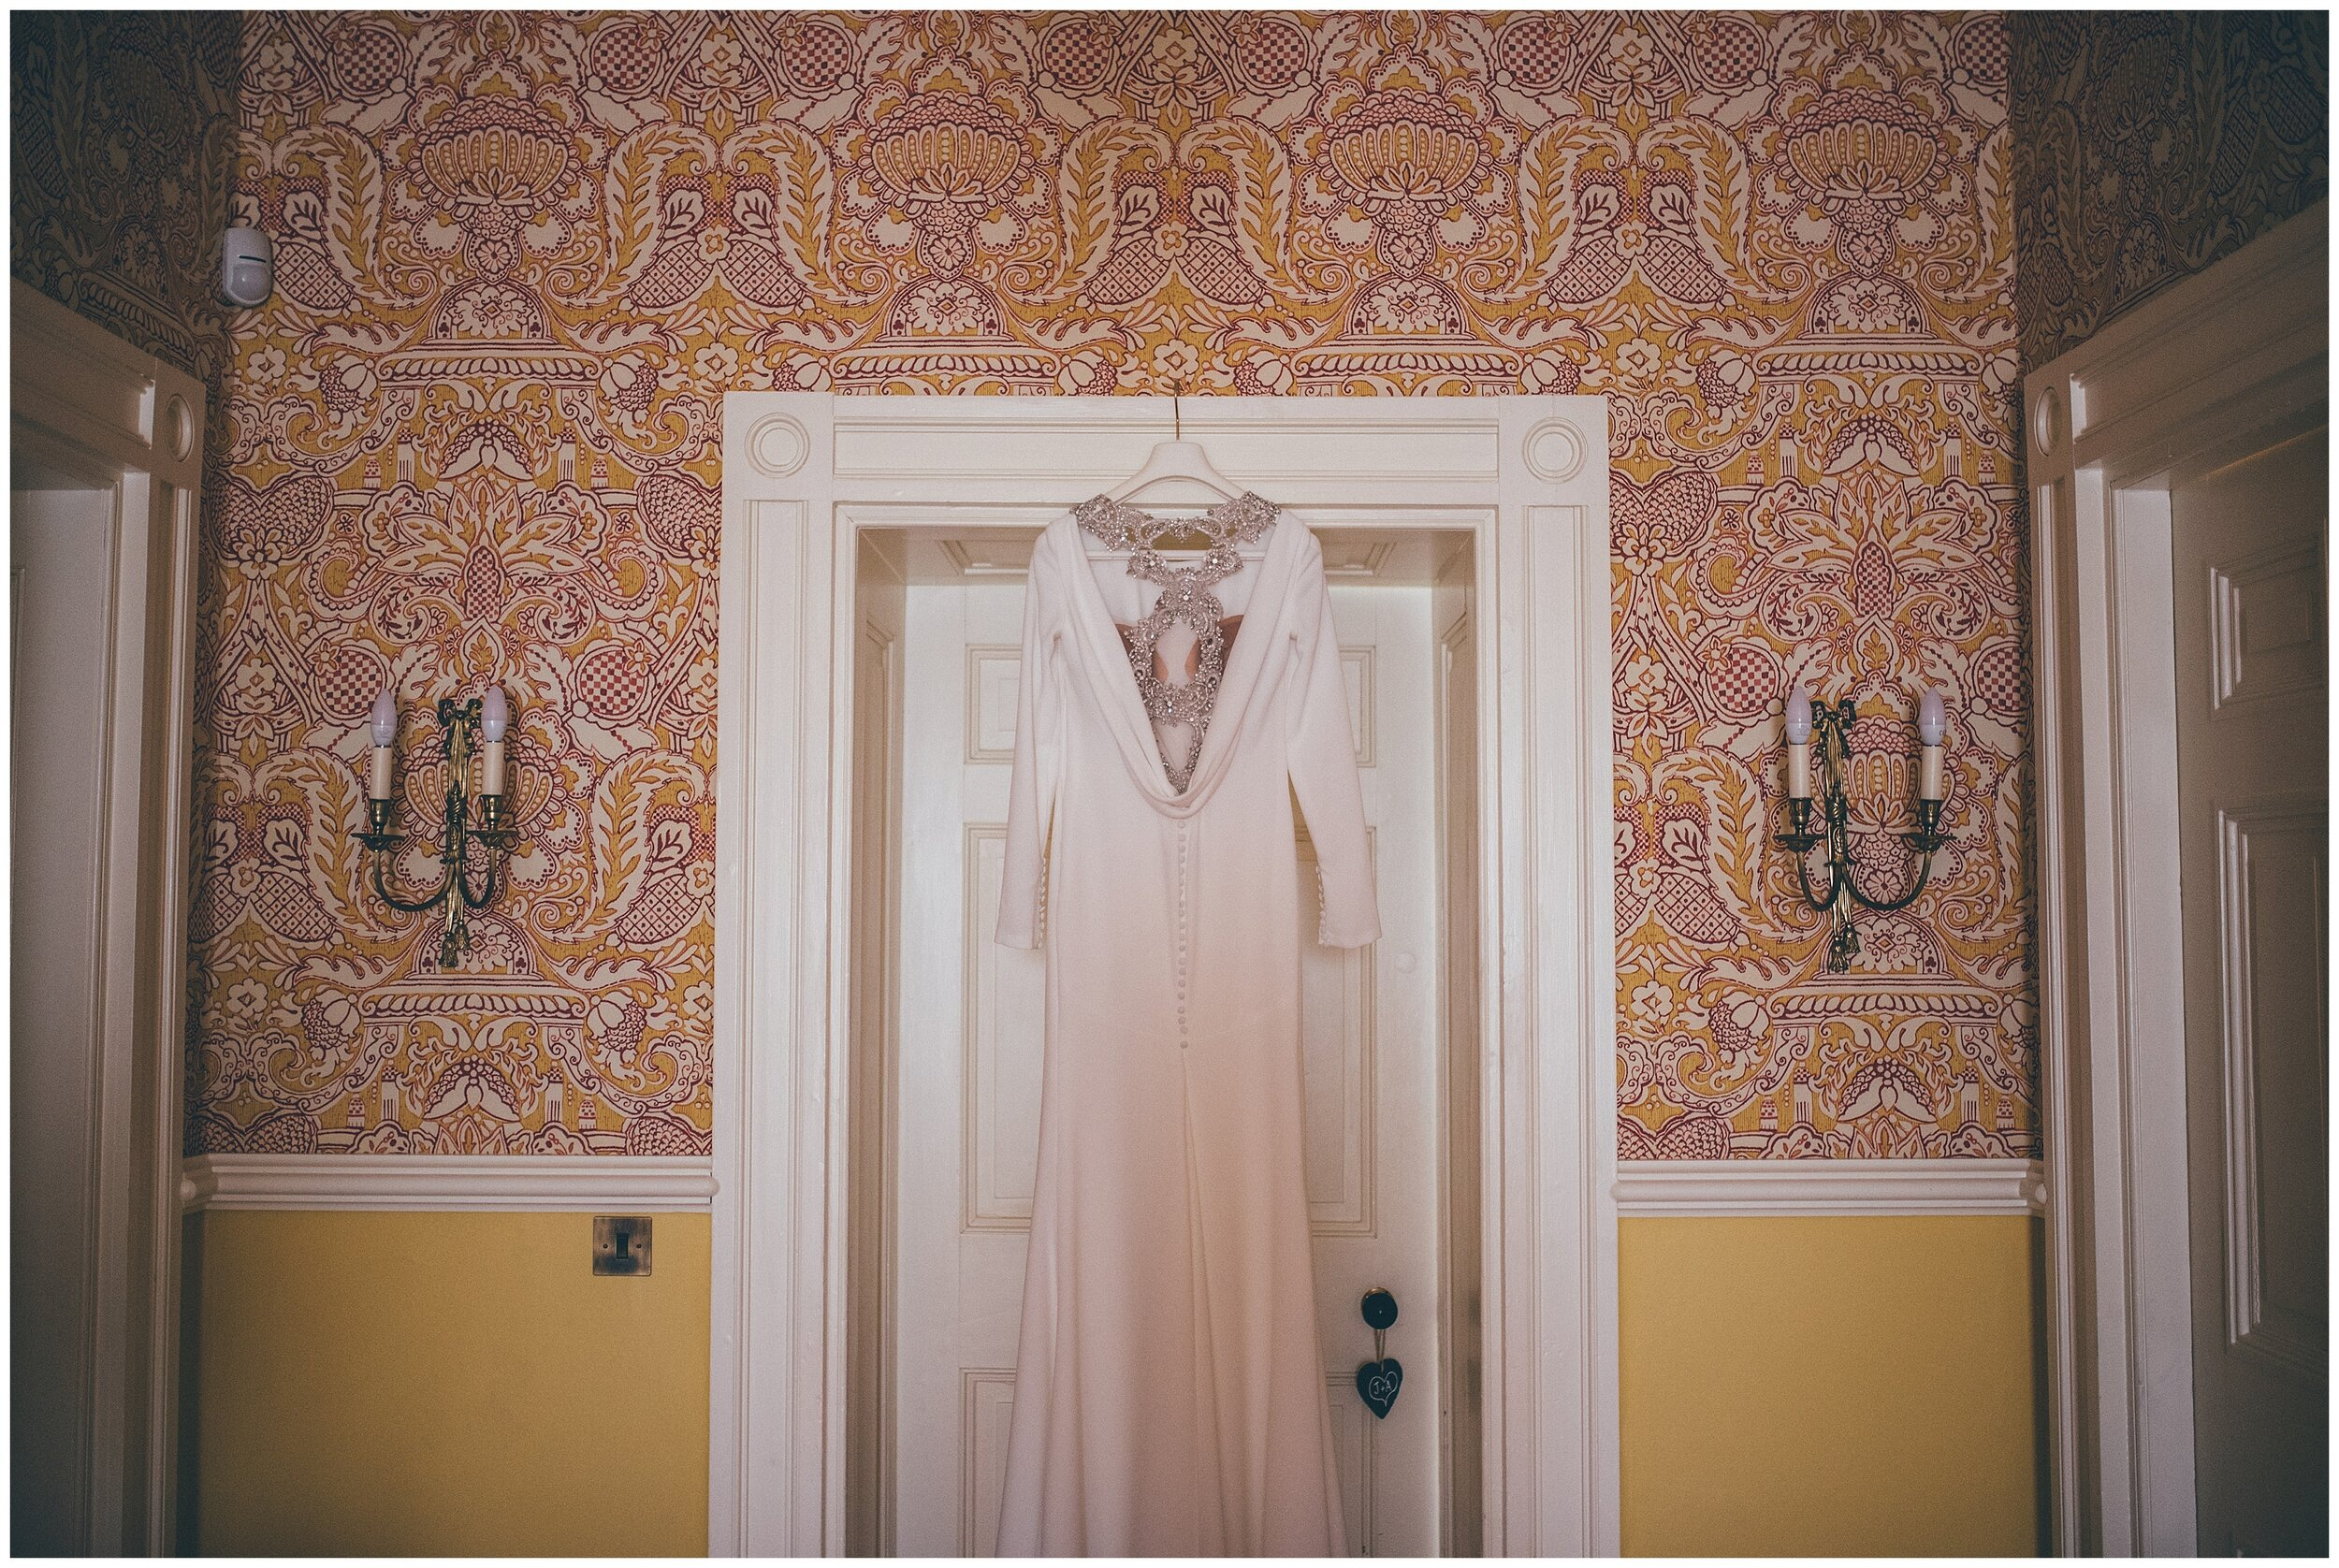 Pronovias wedding gown hung up outside the Bridal Suite at Silverholme Estate in the Lake District.